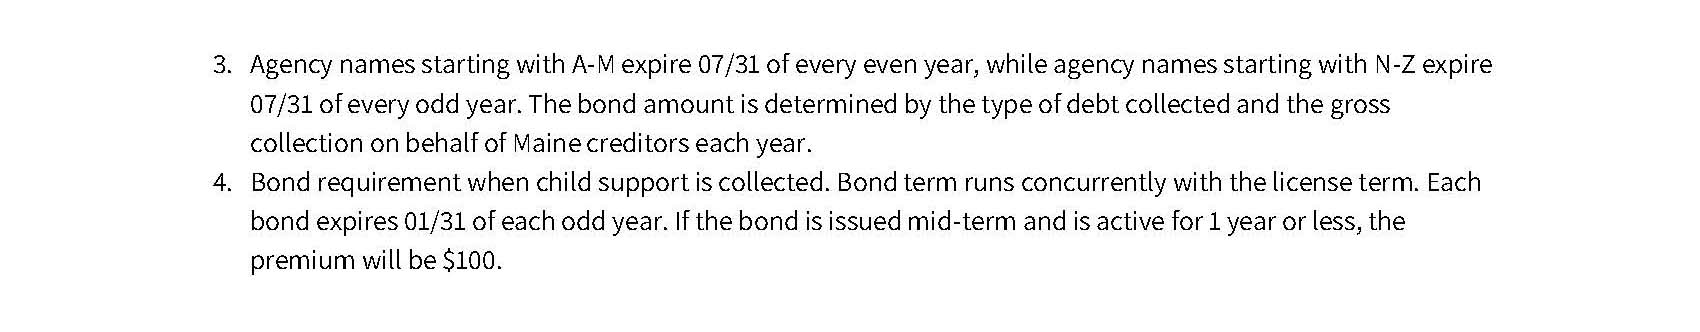 Collection-Agency-Bonds-Table-Page-4